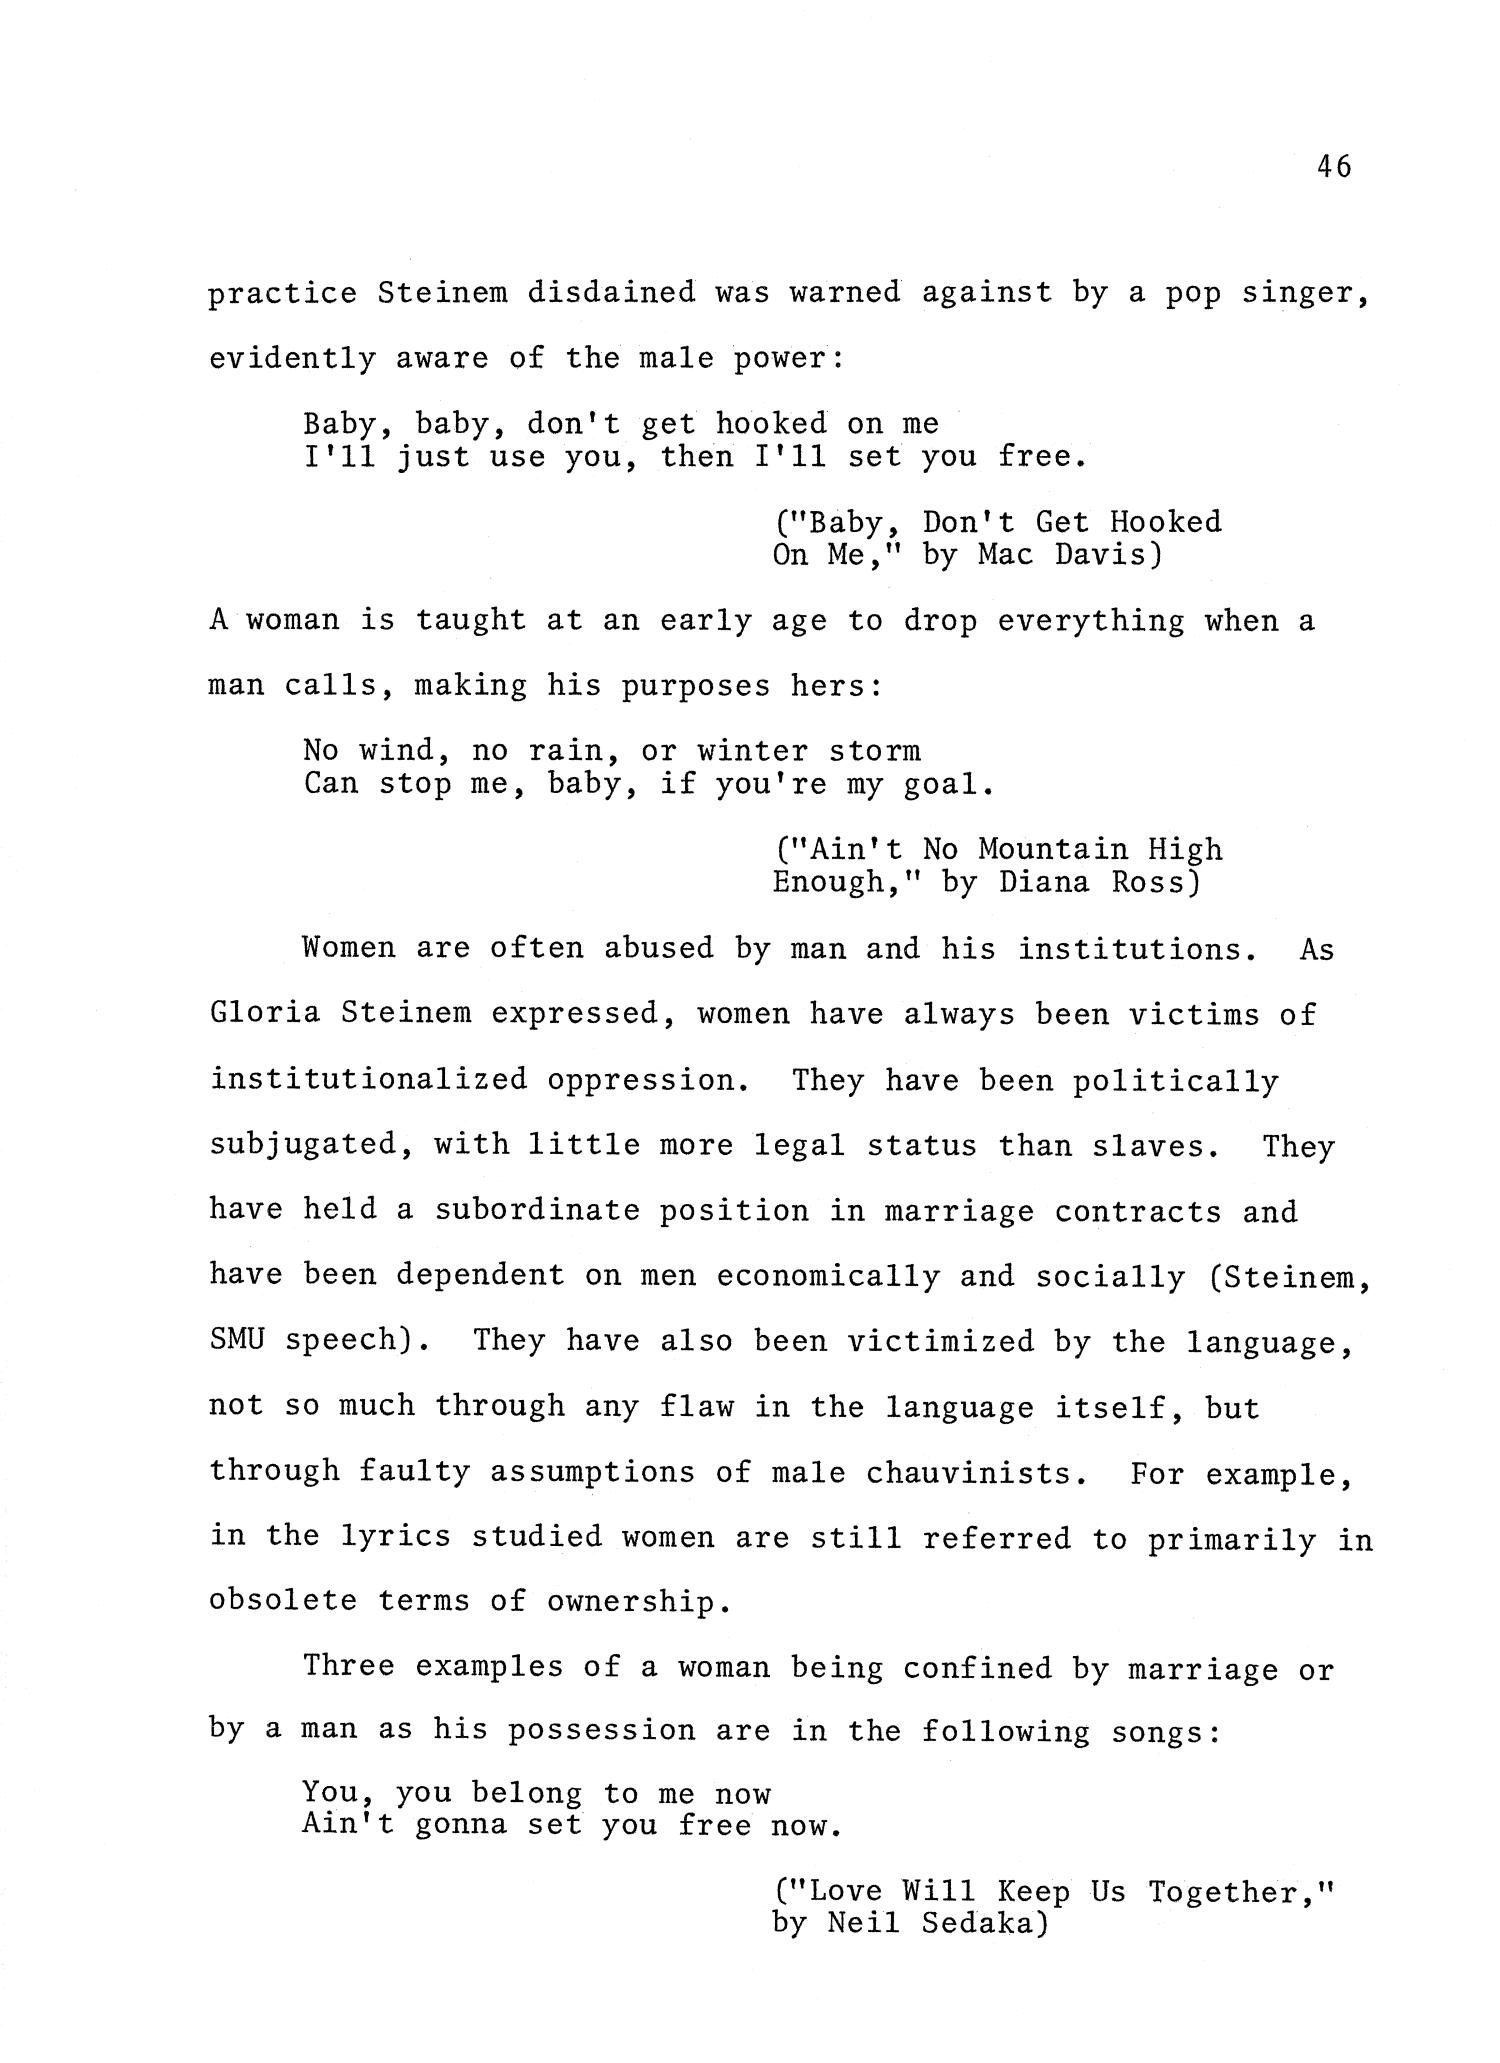 Sexist Language In The Popular Lyrics Of The Seventies Page 46 Unt Digital Library